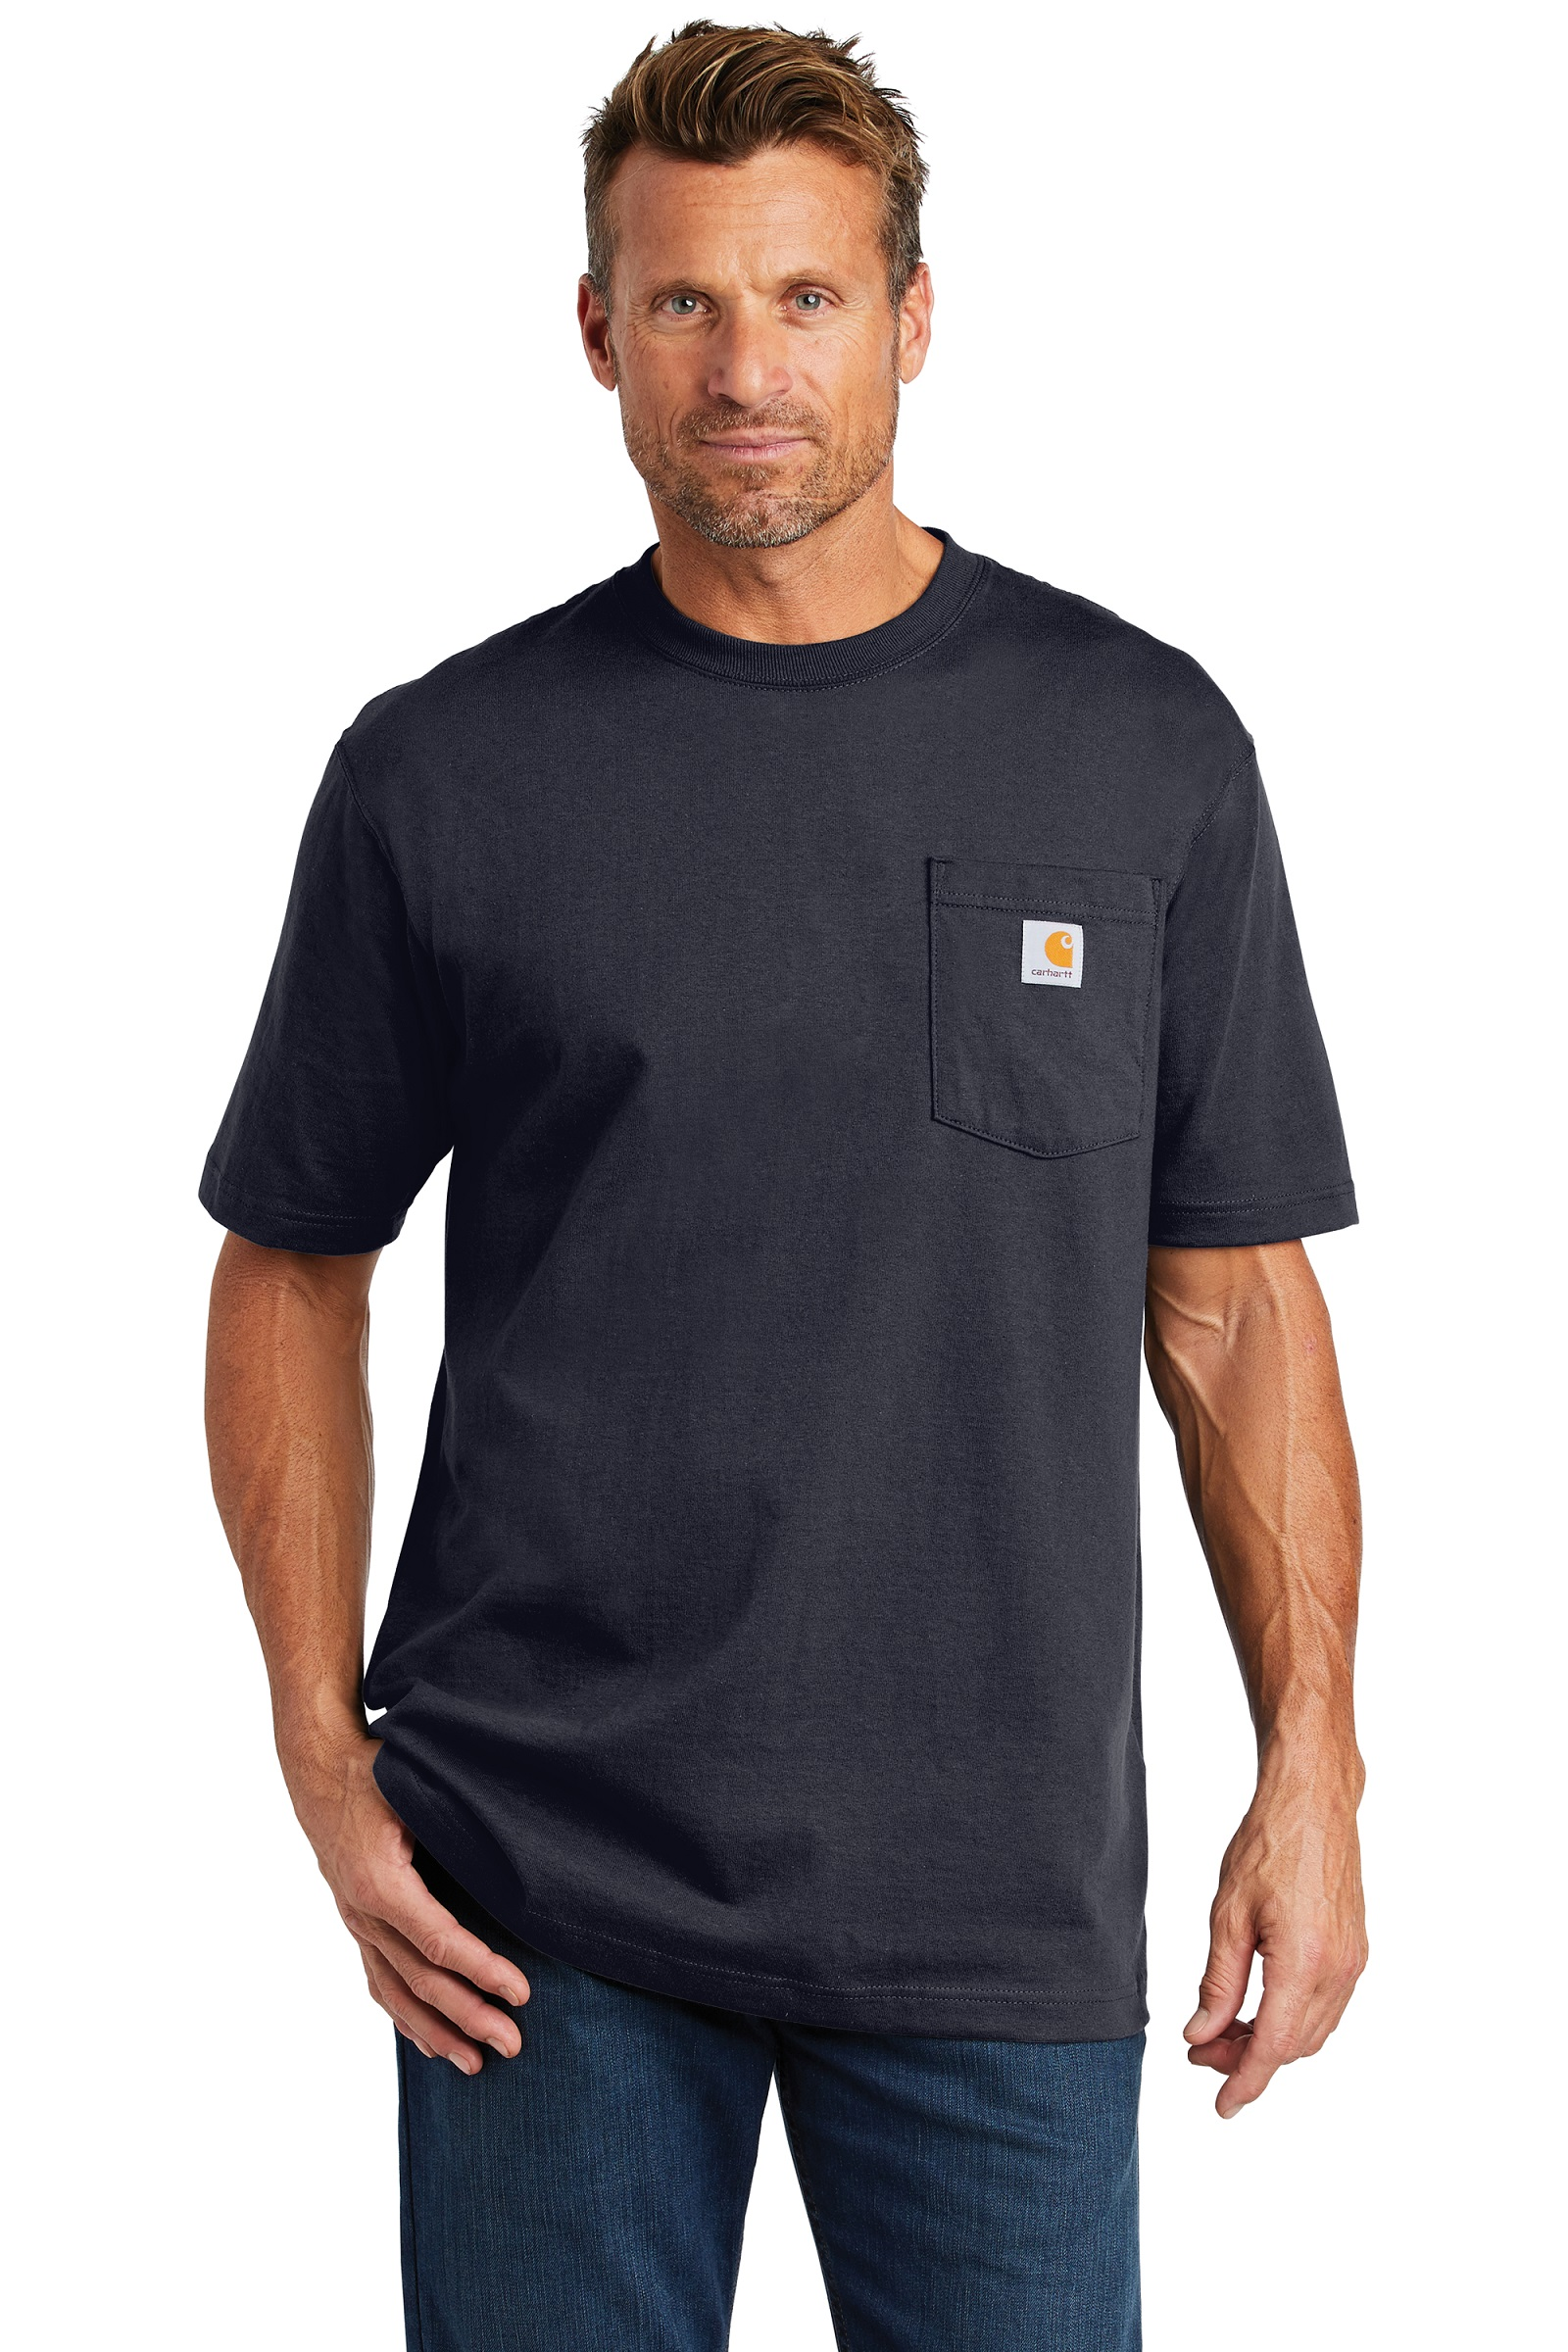 Carhartt Embroidered Men's Workwear Pocket T-Shirt